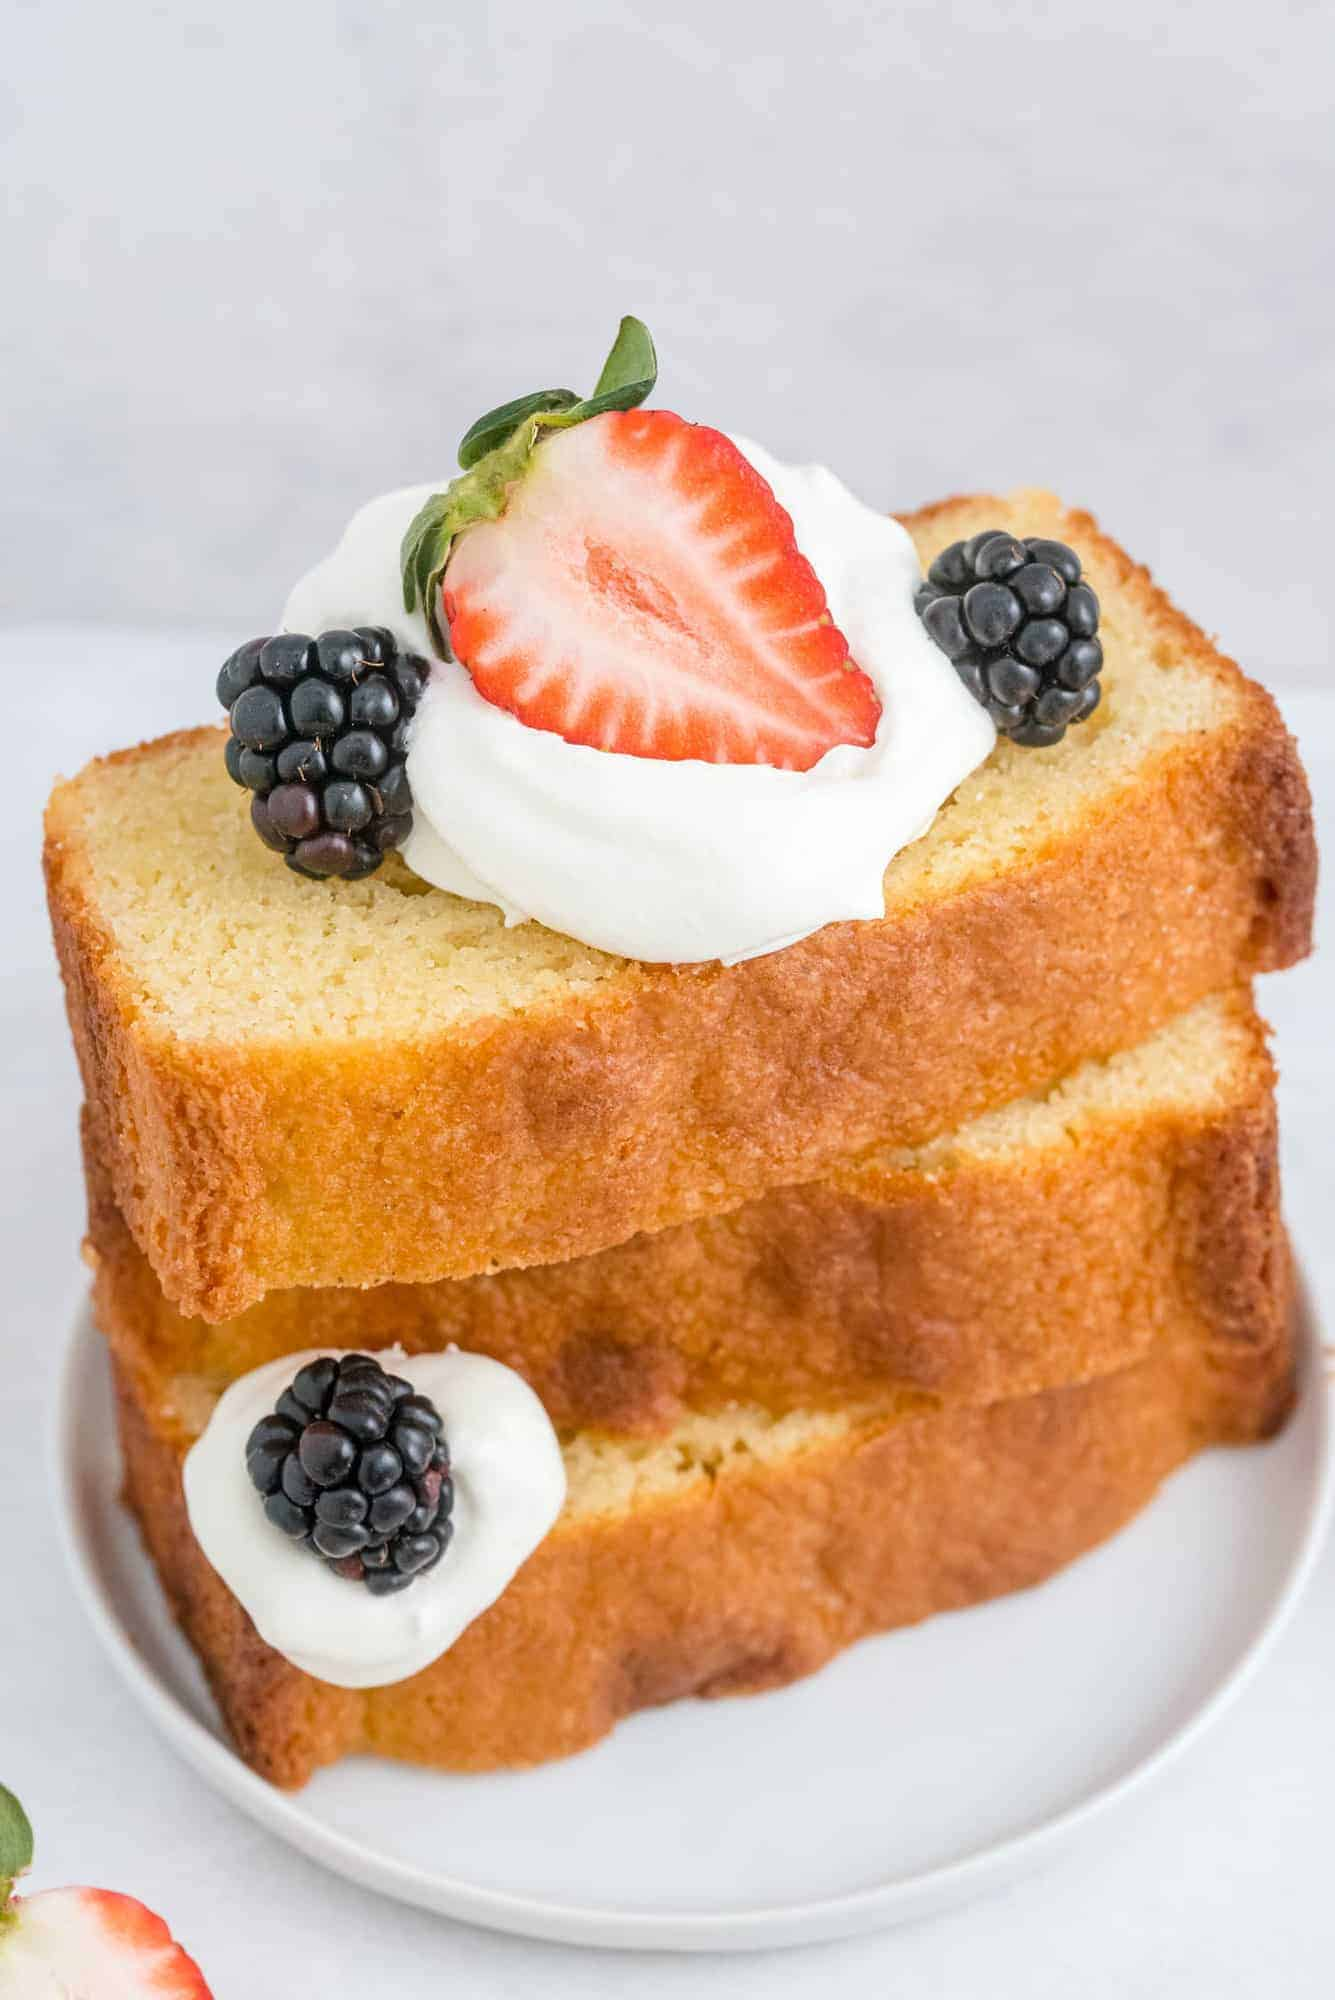 Pound cake slices stacked with fruit and berries.